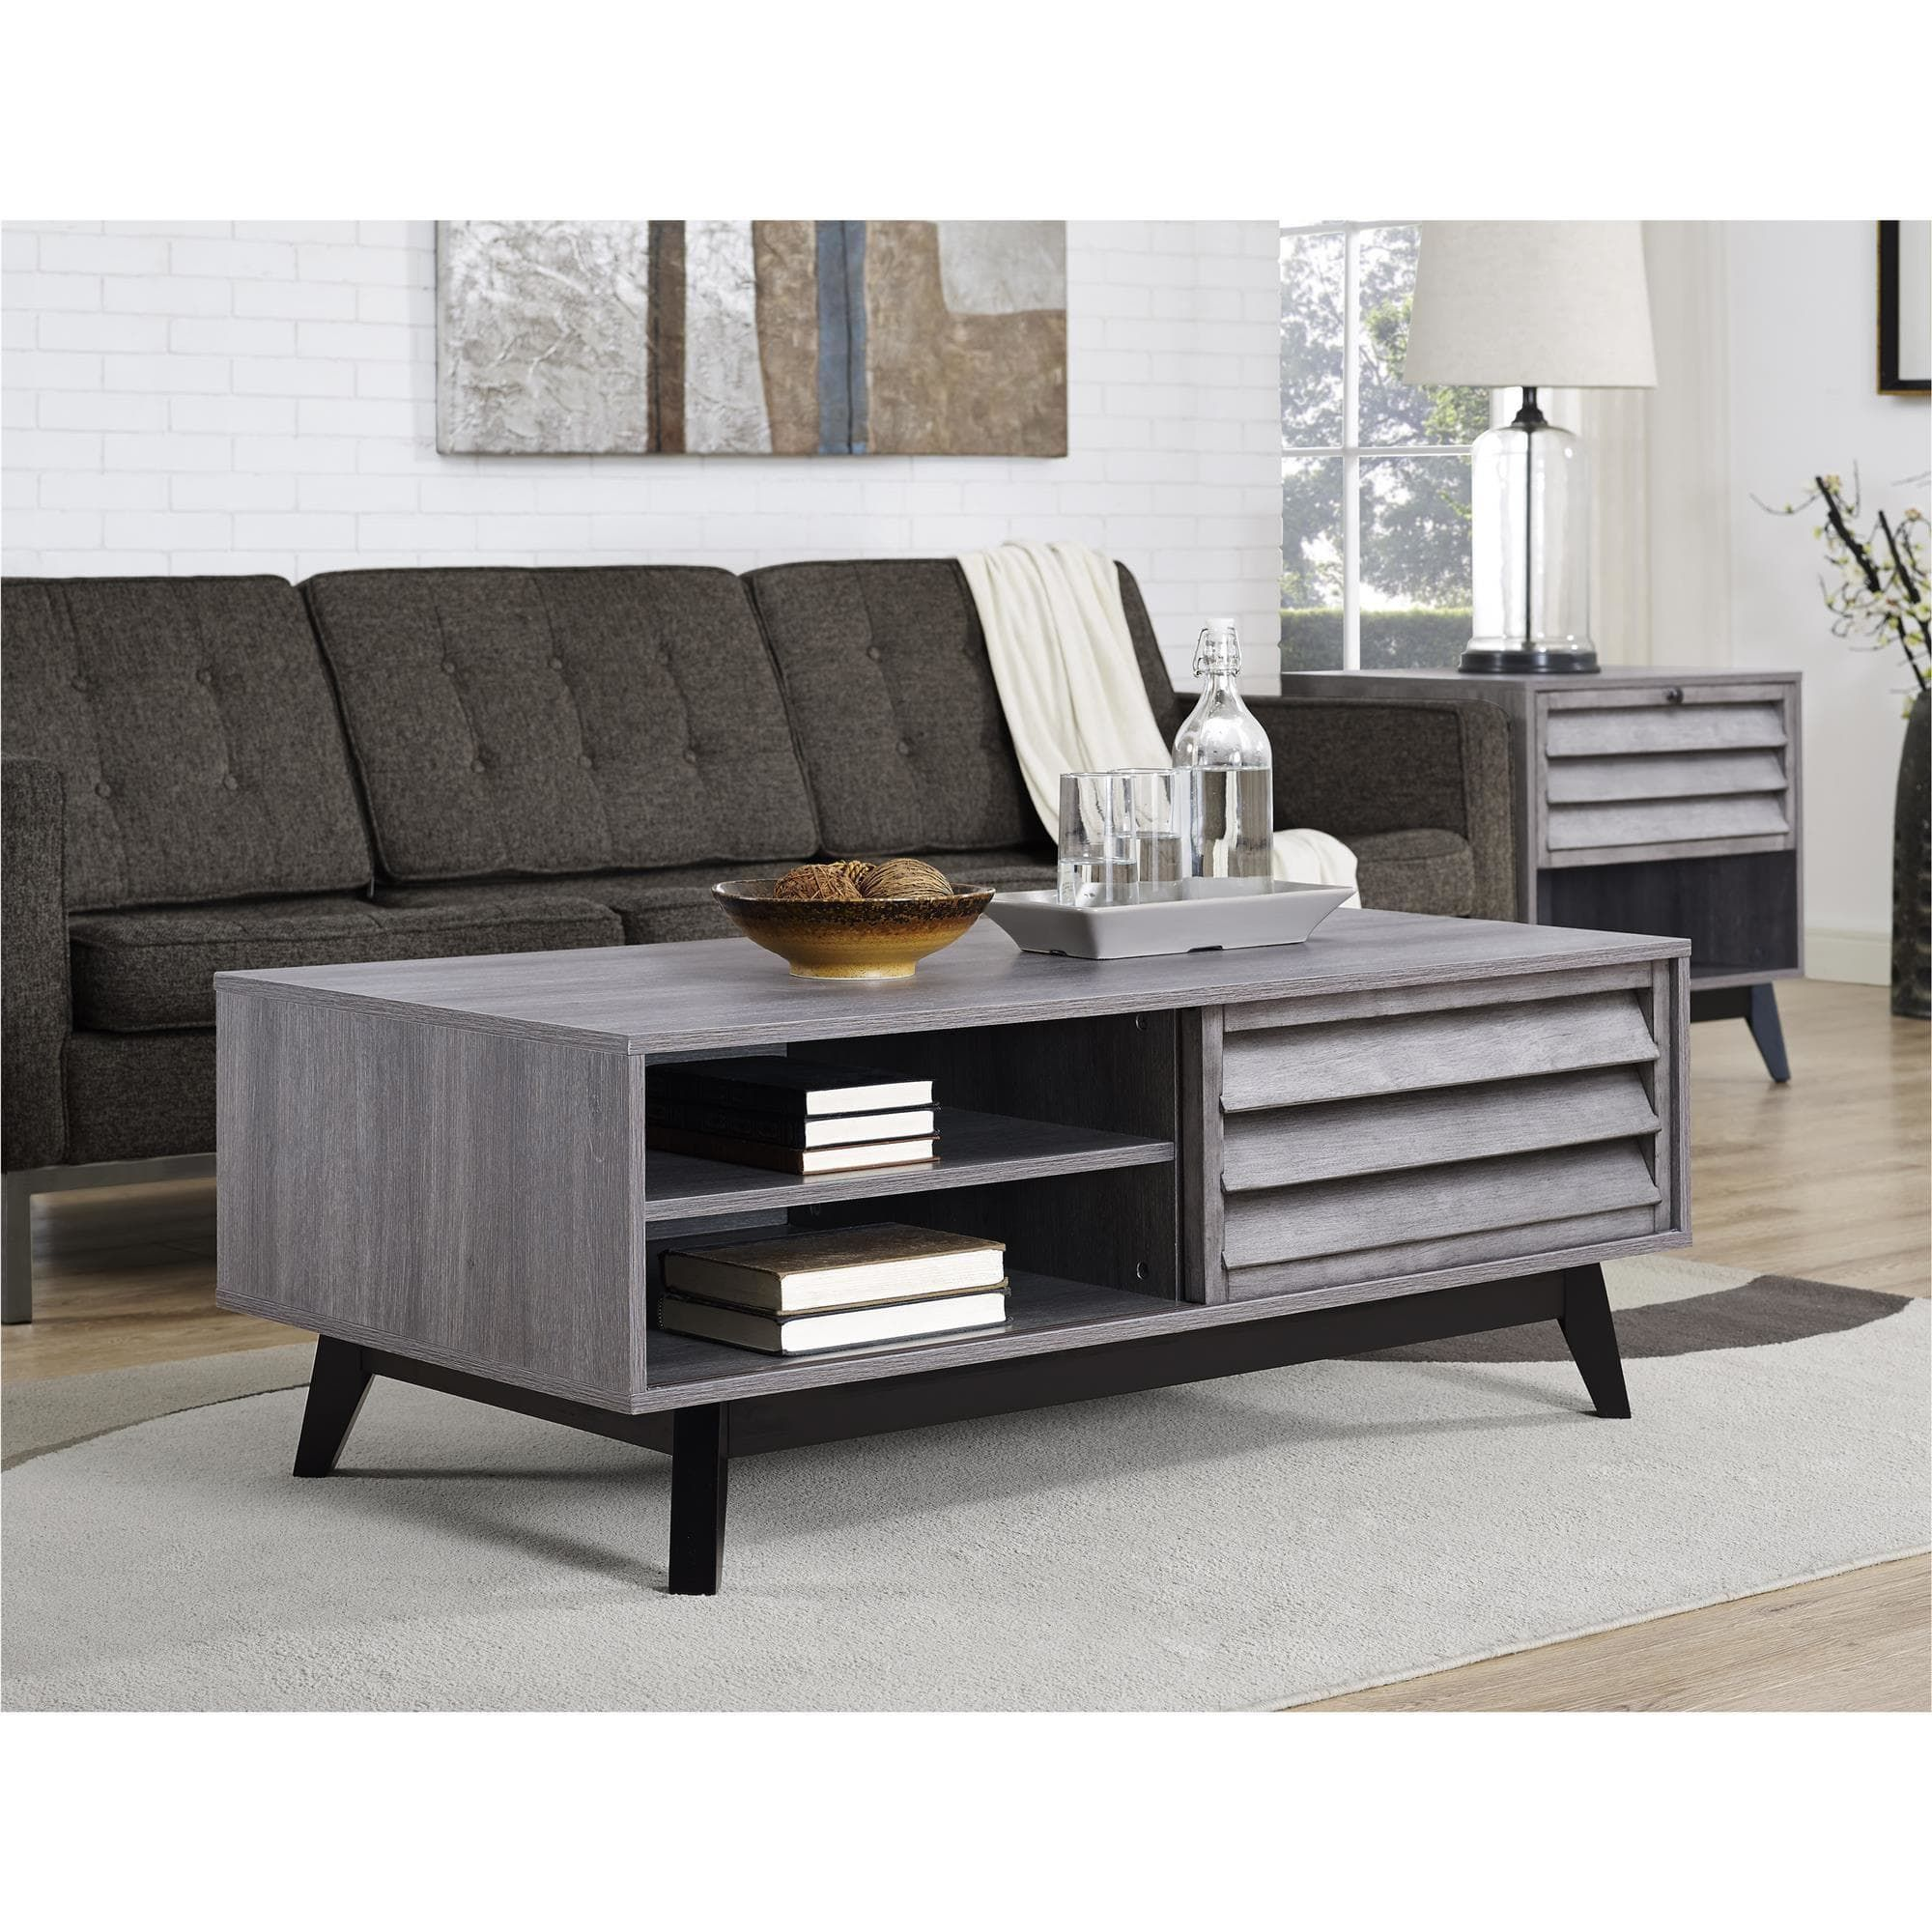 Ameriwood Home Vaughn Coffee Table House Stuff In 2019 Coffee